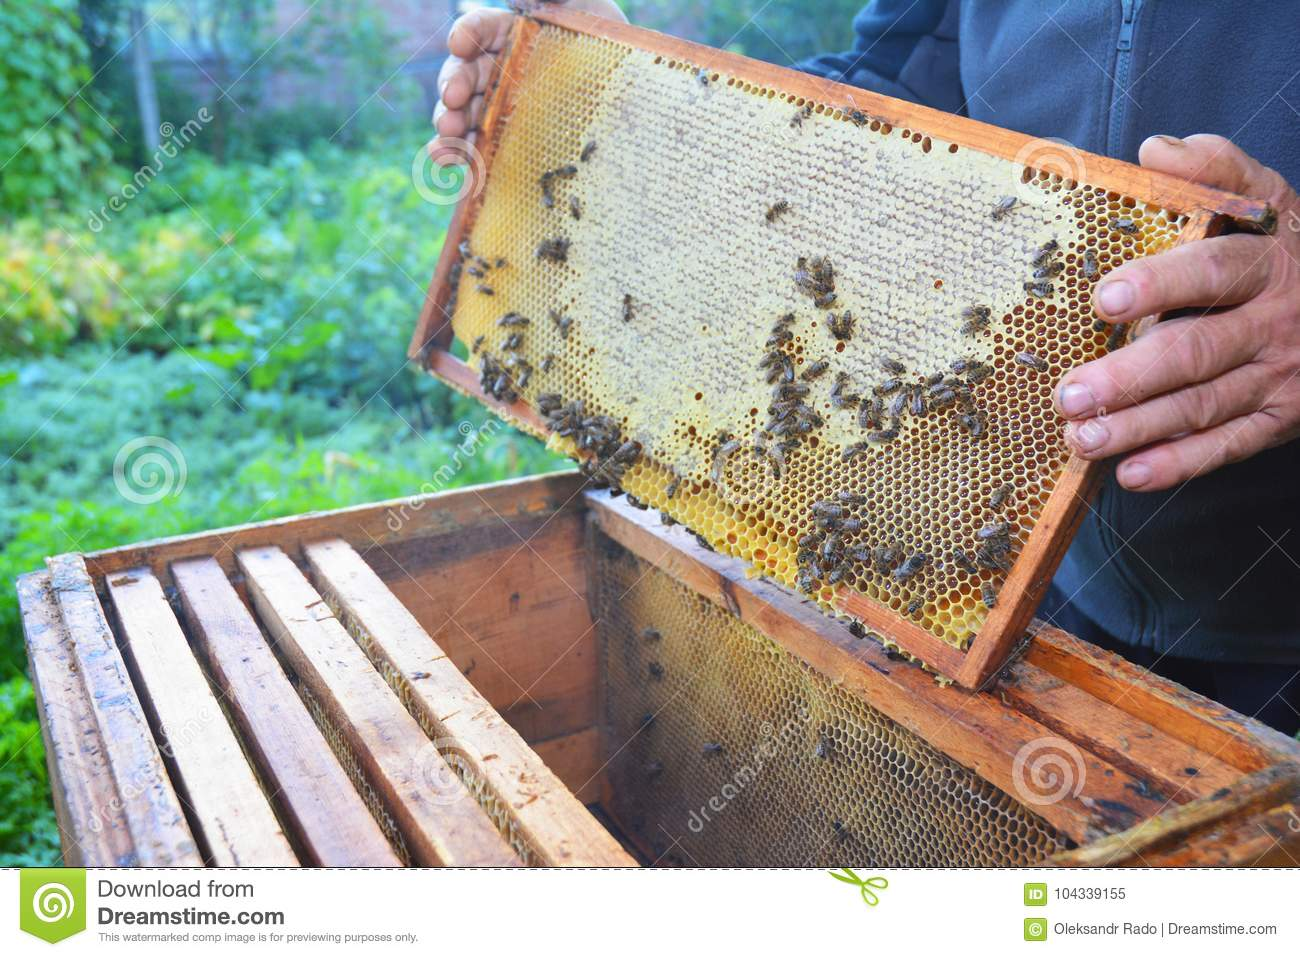 Close up on Beekeeping works. Beekeeper holding with his hands frame of honeycomb from beehive with working honey bees.